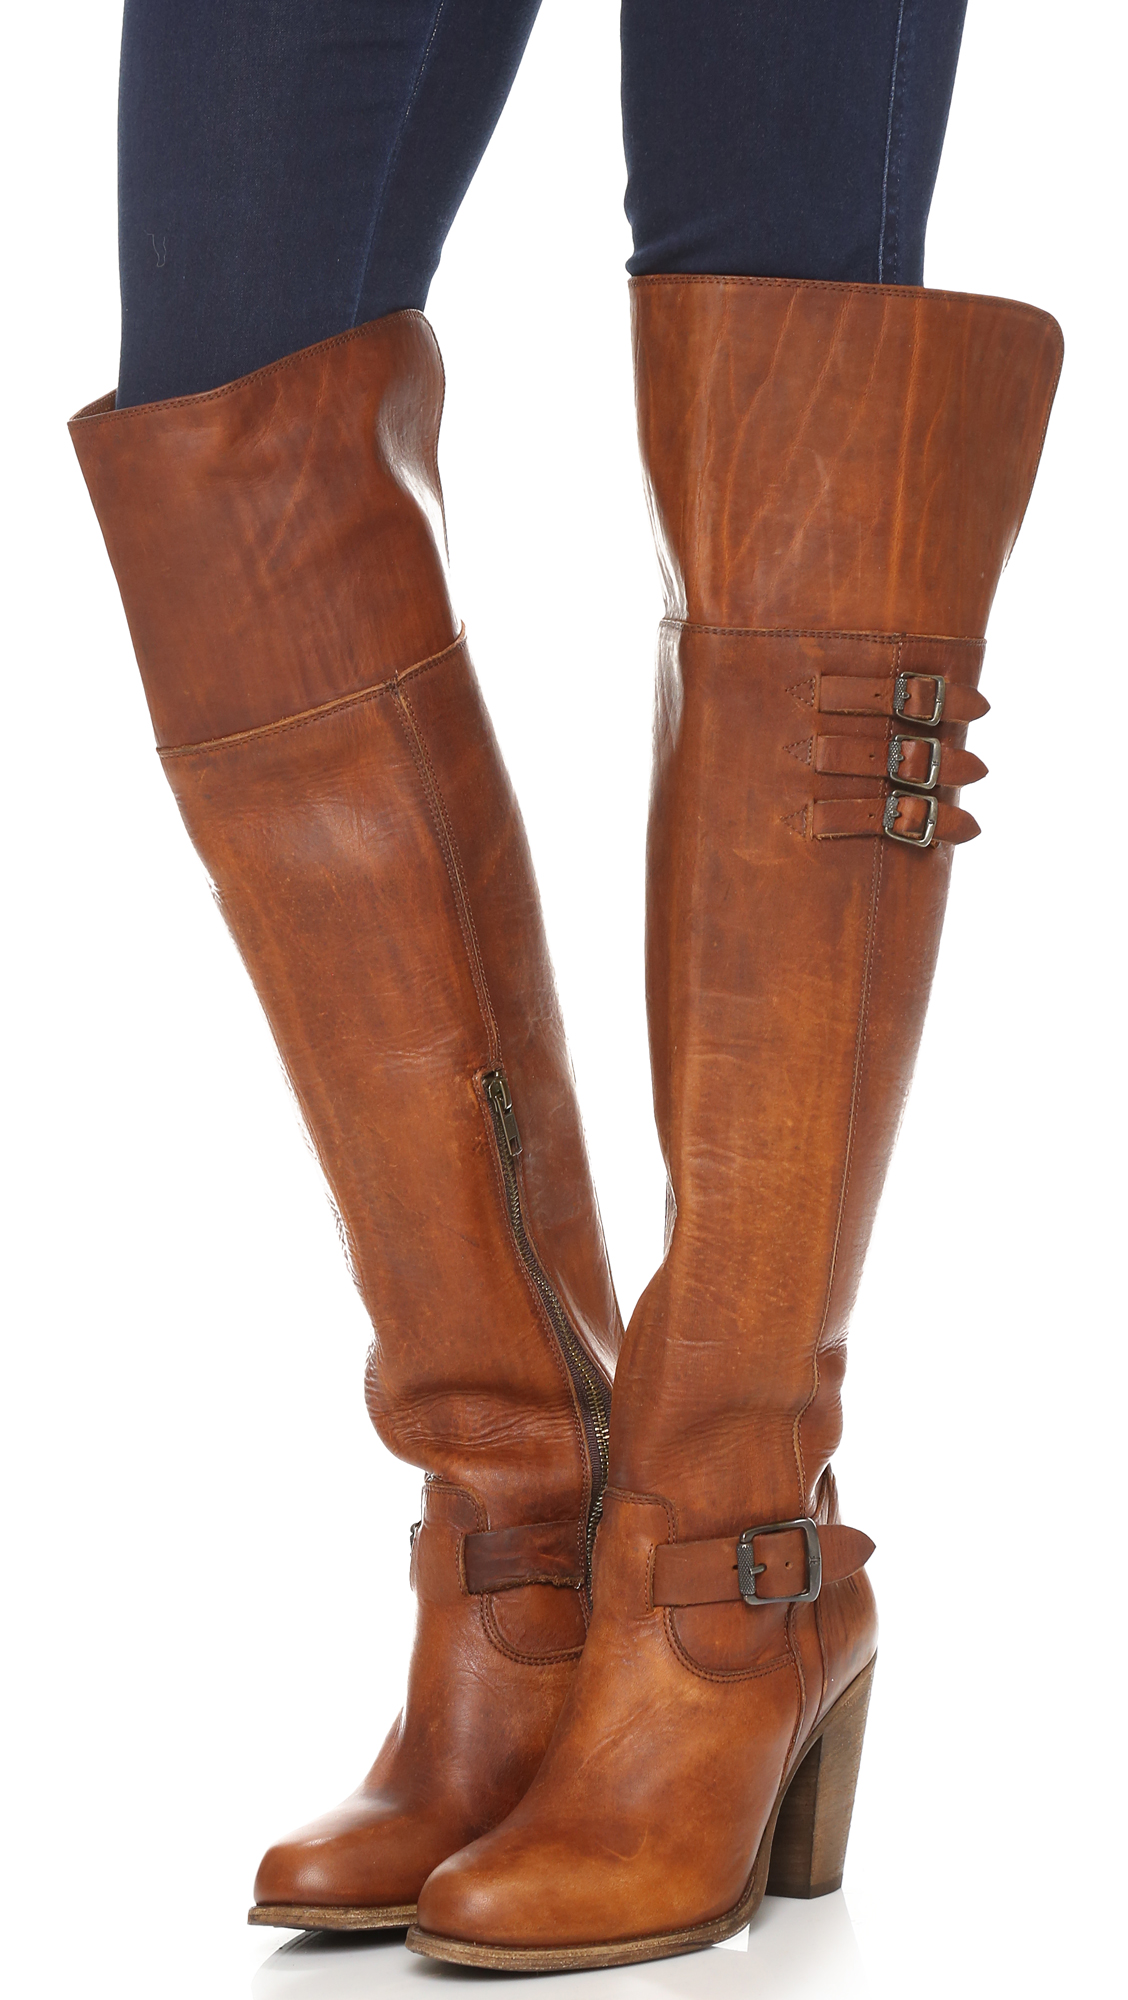 49cf4d2dda1 Frye Jenny Belted Over the Knee Boots